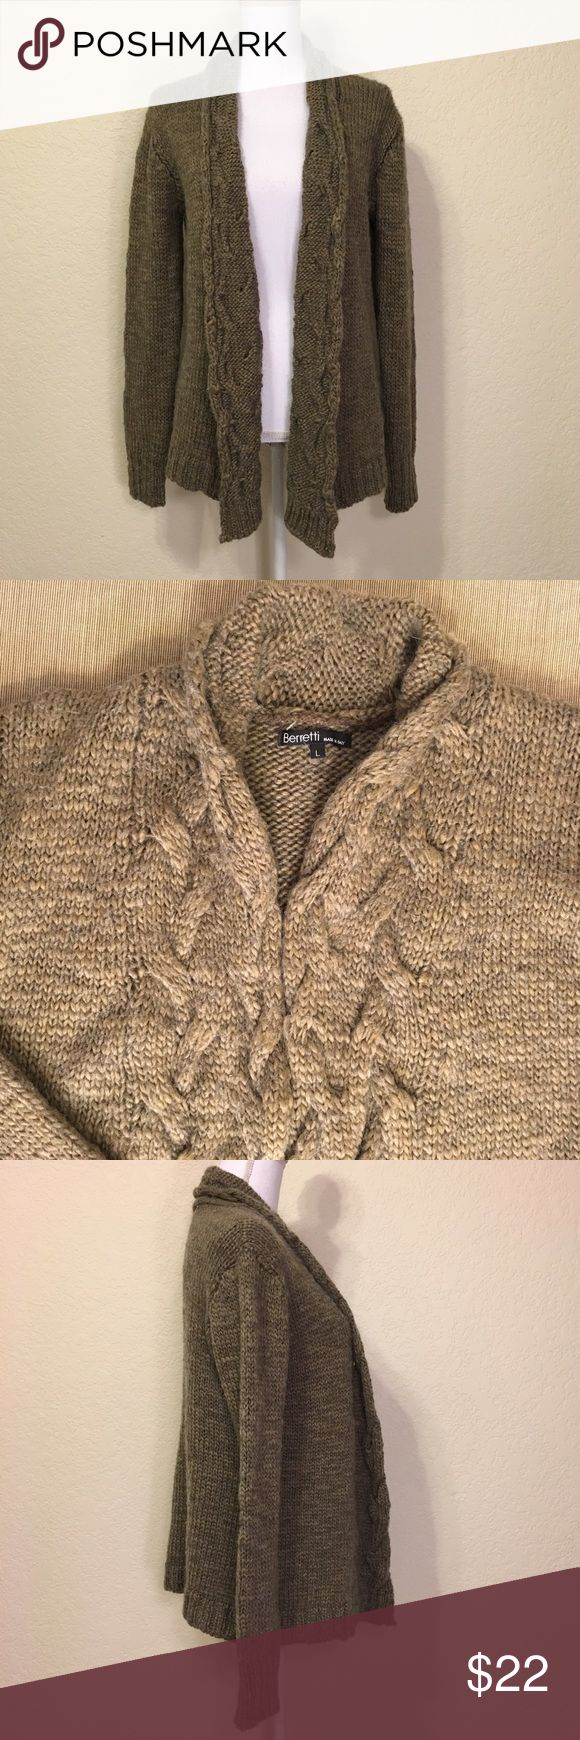 """Berretti Brown Open Cardigan Berretti Brown Open Cardigan.  Size L.  Excellent condition – no pulls or defects.  Length shoulder to hem: 25"""".  Measurements laid- flat – bust: 44"""", waist: 40"""", bottom of cardigan: 52"""".  Sleeve length: 25.5"""".  Cuff width: 4"""".  77% acrylic, 23% wool.  Hand wash or dry clean.  Made in Italy.  Love it but not the price - I'm open to (reasonable) offers or consider bundling 2 or more items for an additional 15% off and combined shipping!     Check out my reviews…"""